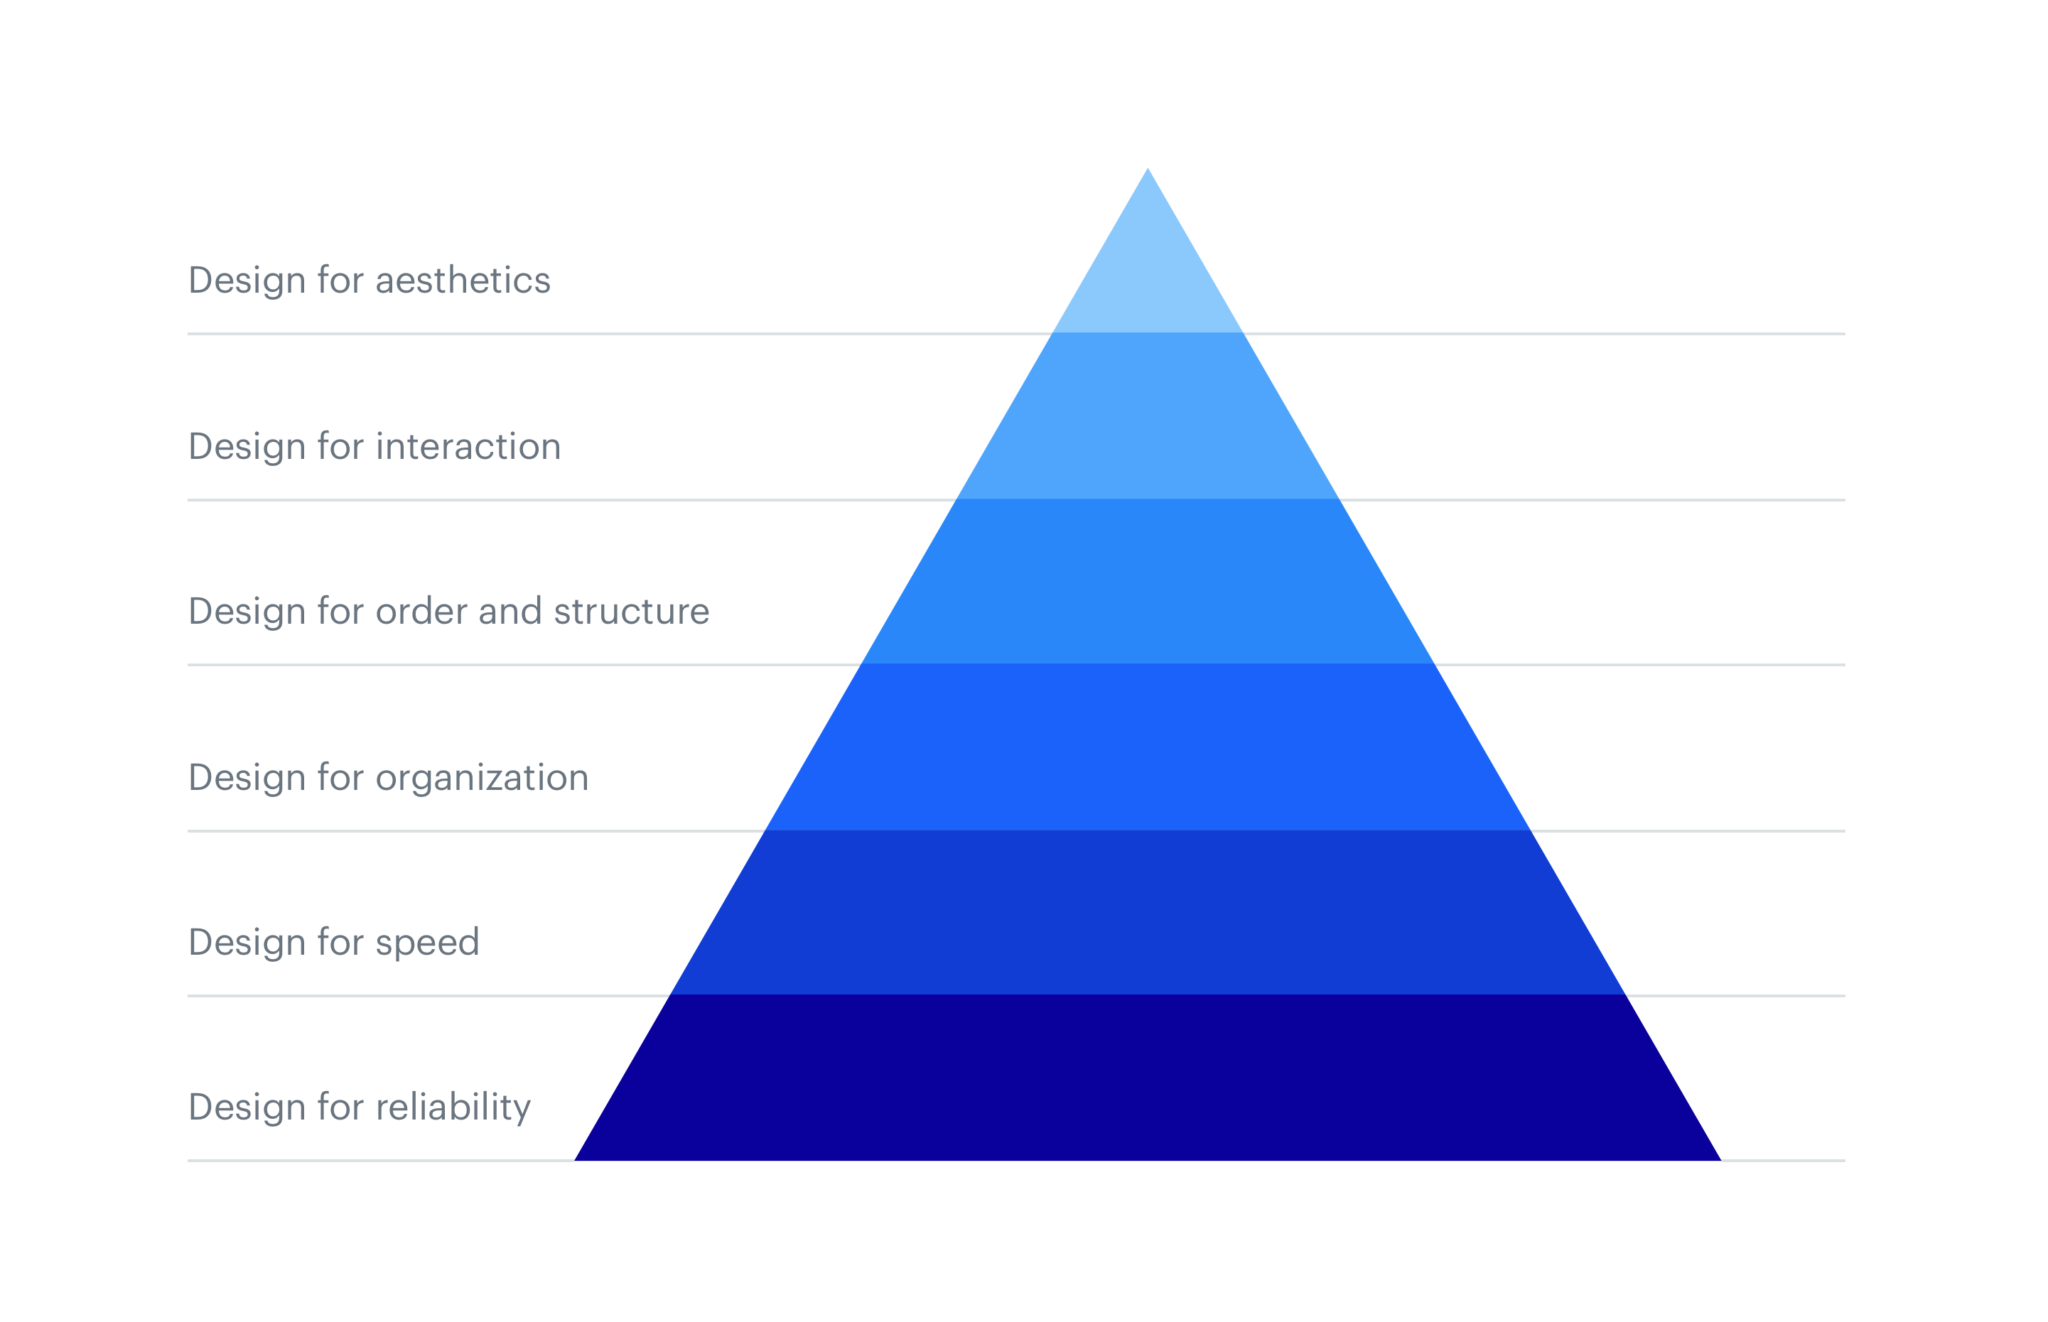 A blue pyramid chart highlighting the user interface hierarchy of elements to include on your e-commerce website.